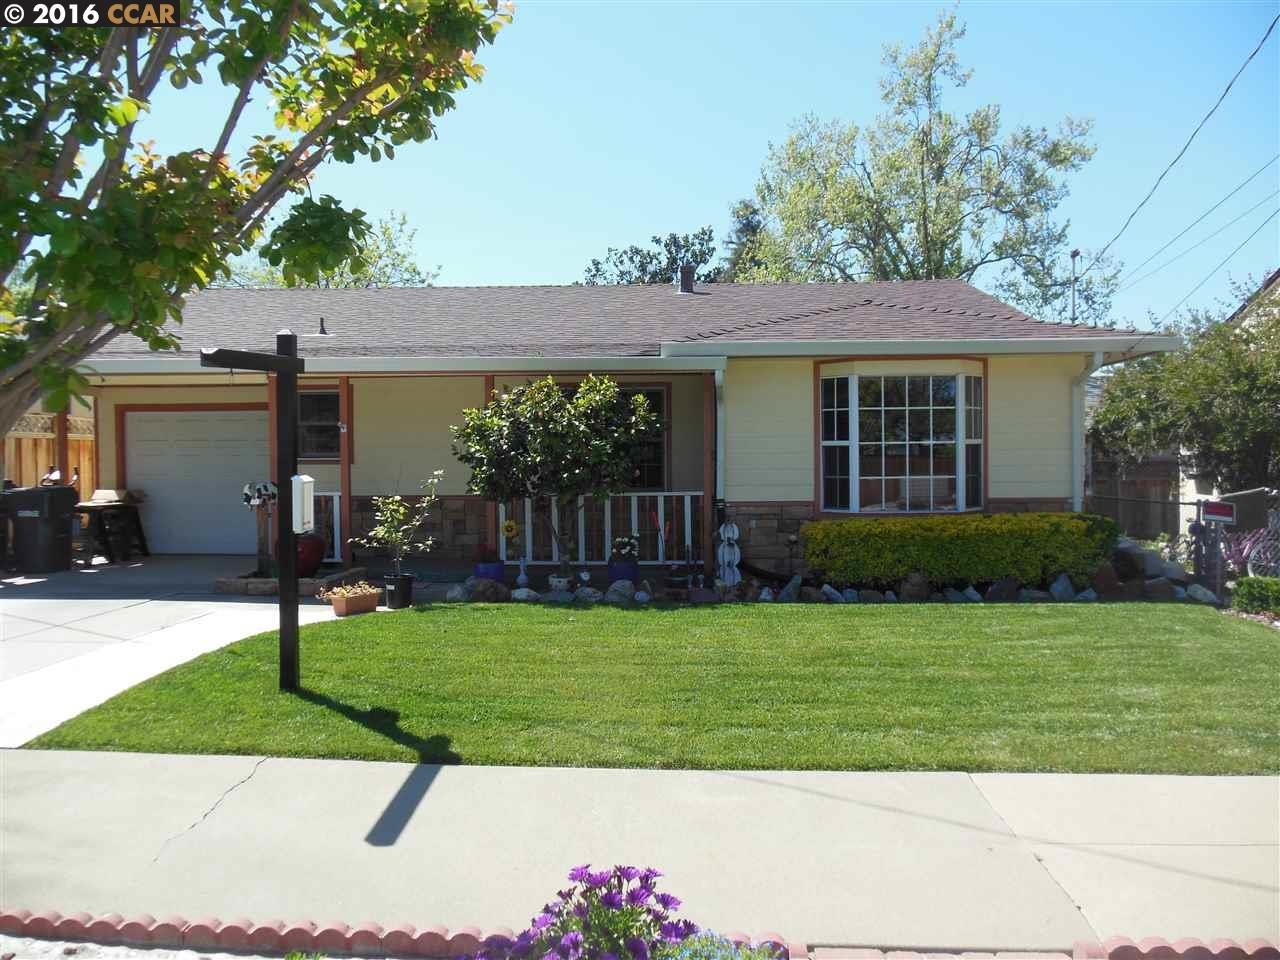 641 S N St, Livermore, CA